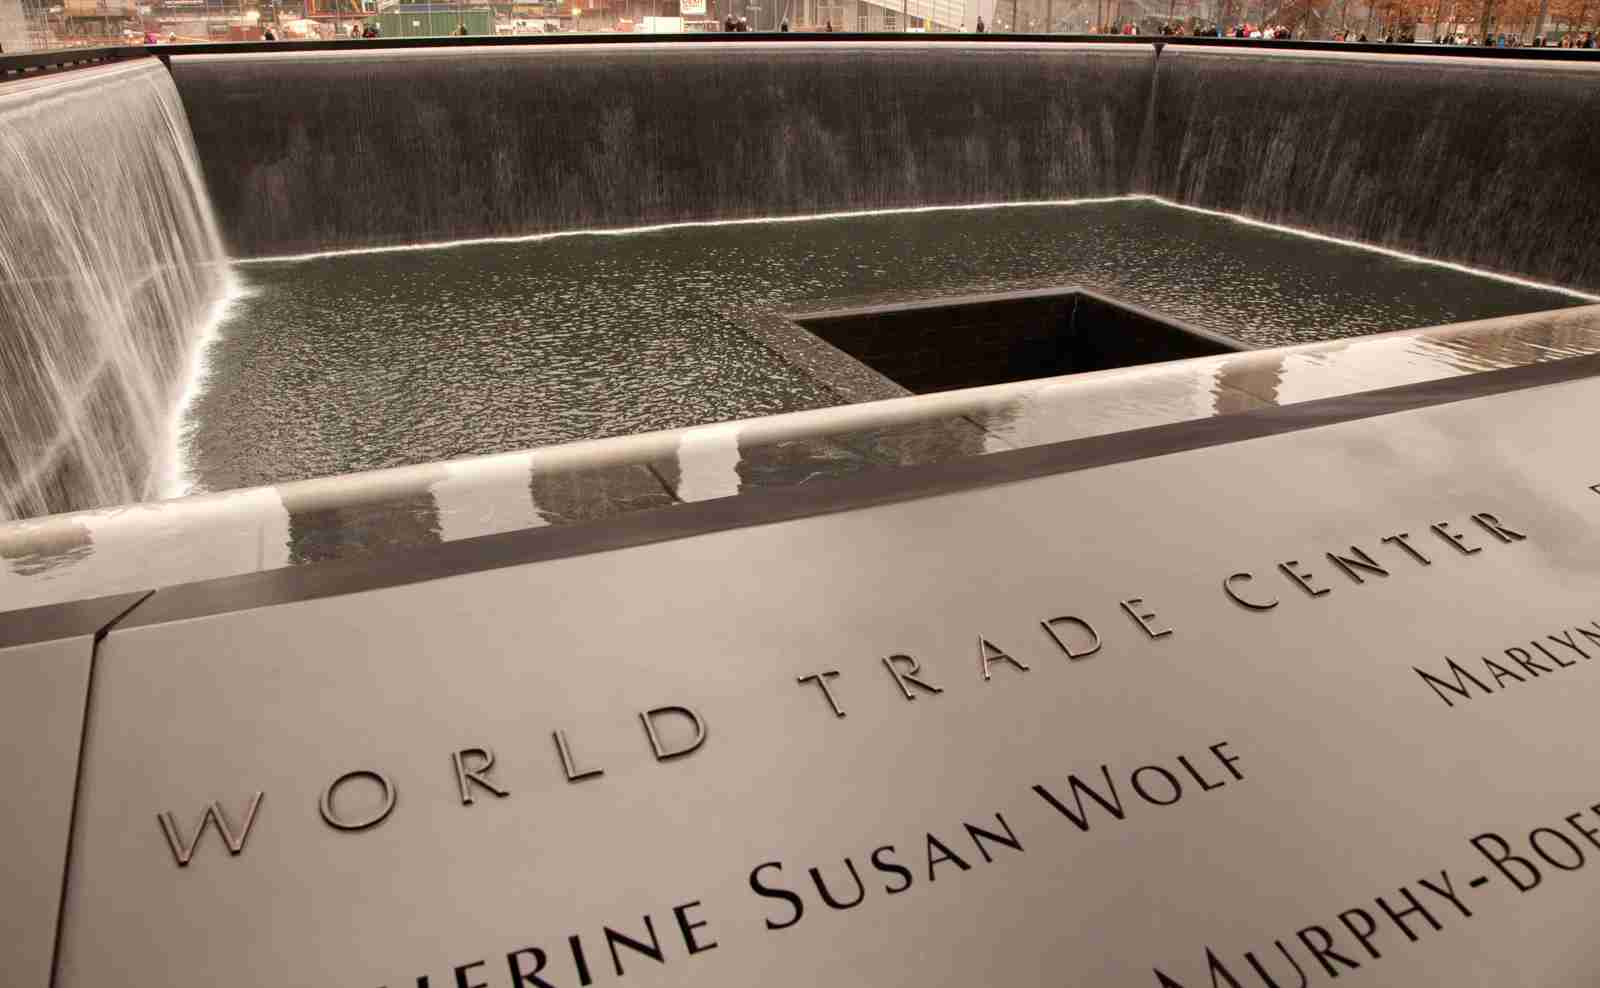 The 9/11 memorial at One World Trade Center. (Photo by Grant Faint/Getty Images)